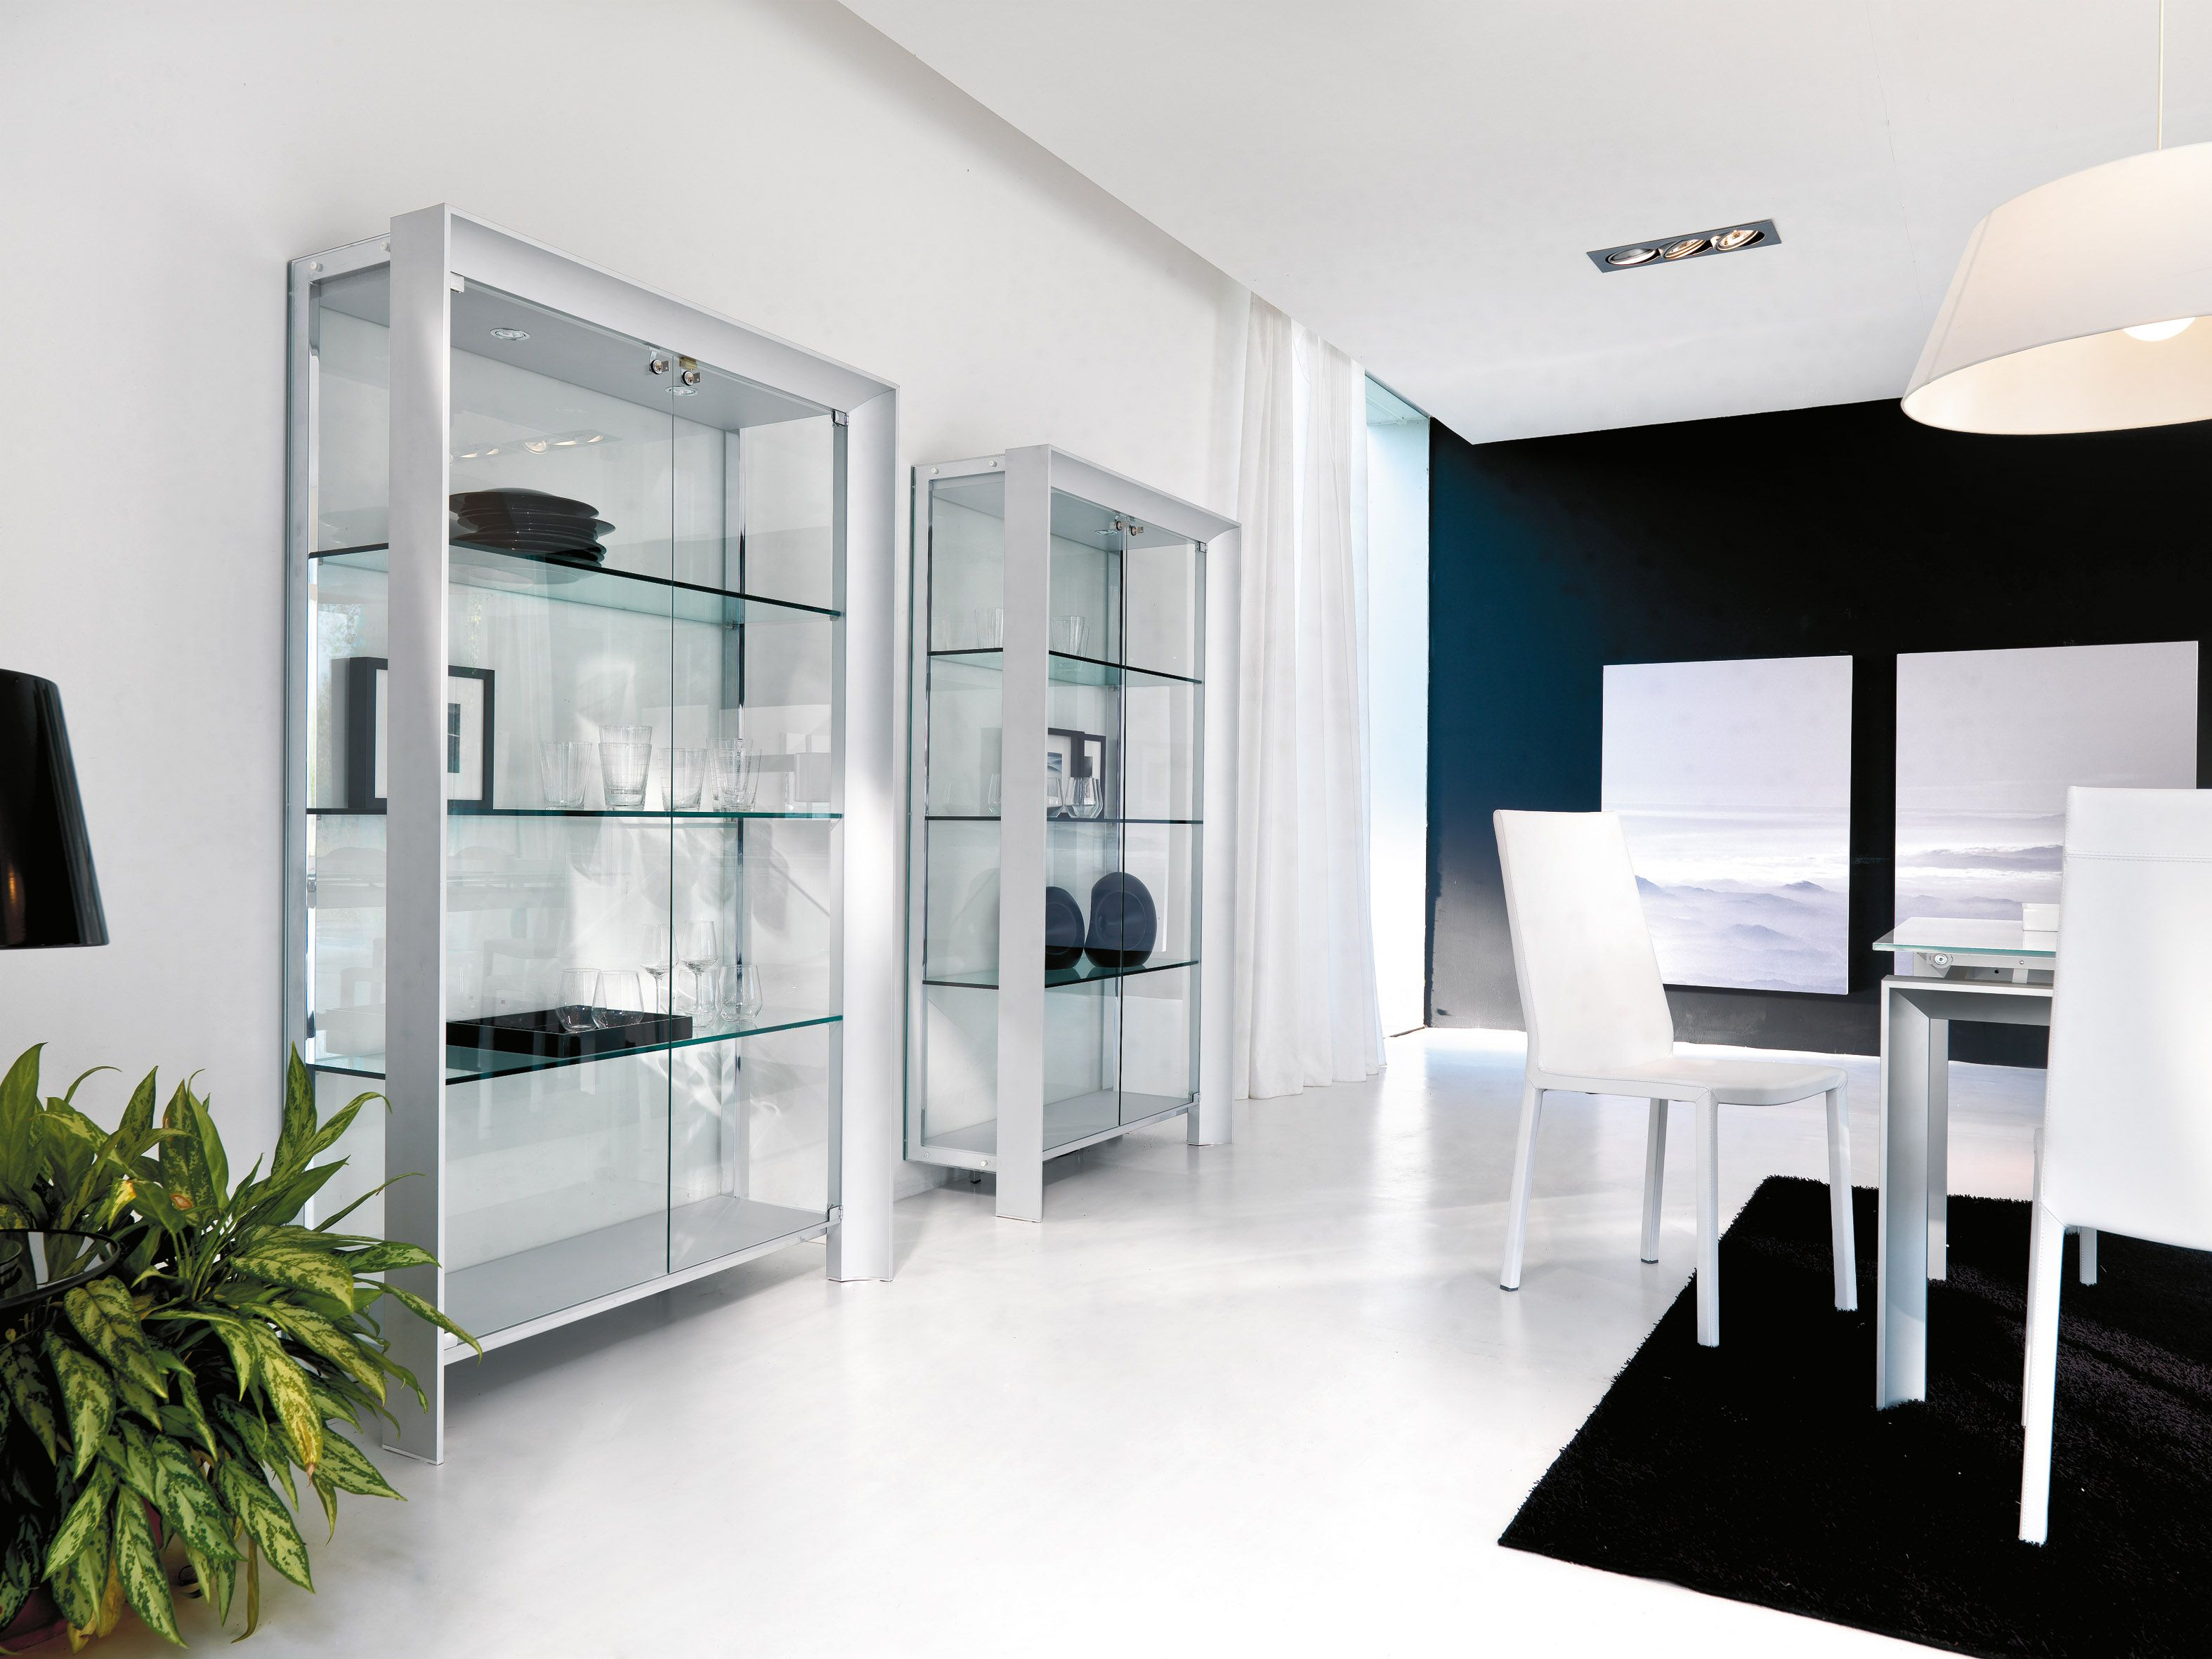 Aurora glass cabinet with sides, back panel and shelves in tempered glass and supporting structure wood veneered in different finishing. Aurora is a simple glass cabinet that easily adapts into any ambient in your home. Available also with internal led light spot.